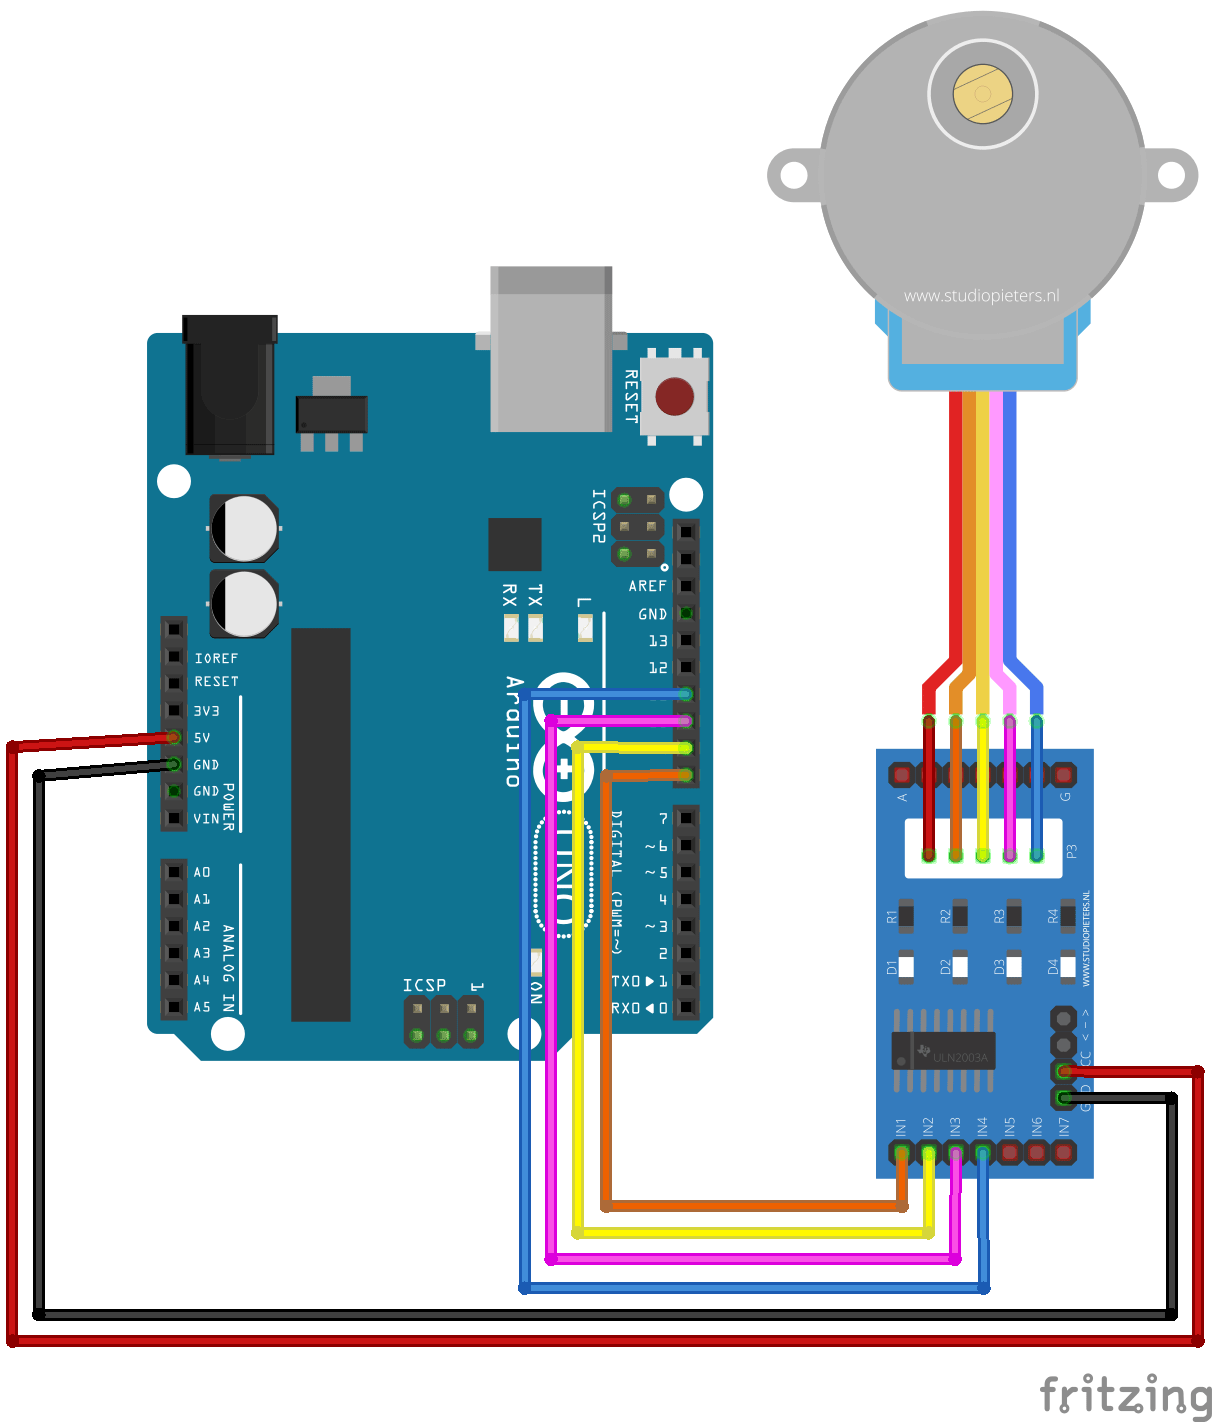 Awesome Arduino Stepper Motor Control Tutorial With Code And Circuit Diagram Wiring Cloud Loplapiotaidewilluminateatxorg